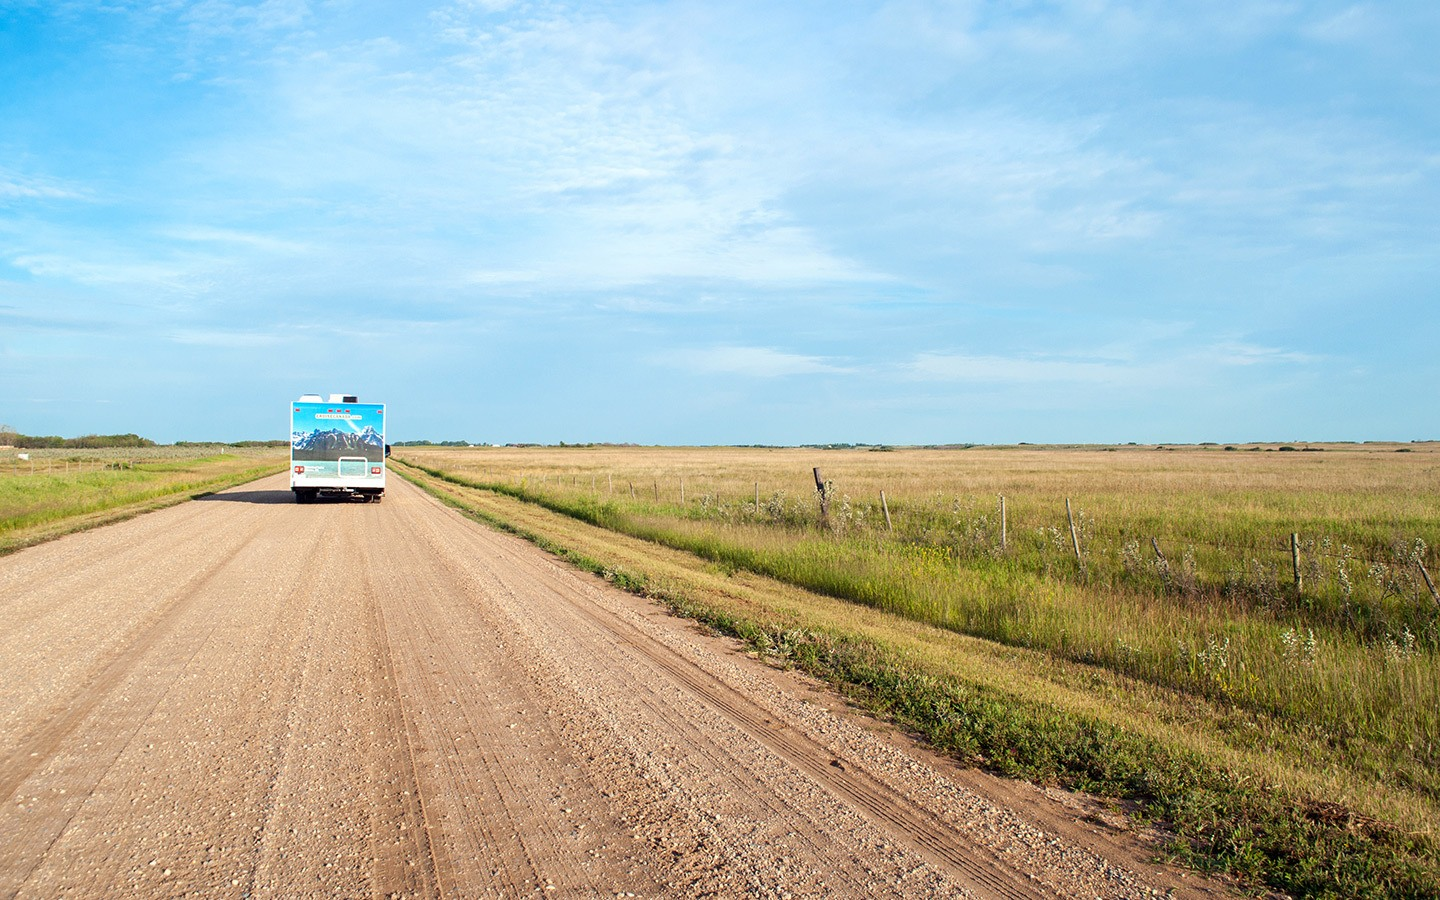 RV on an unsealed road in the Canadian Prairies